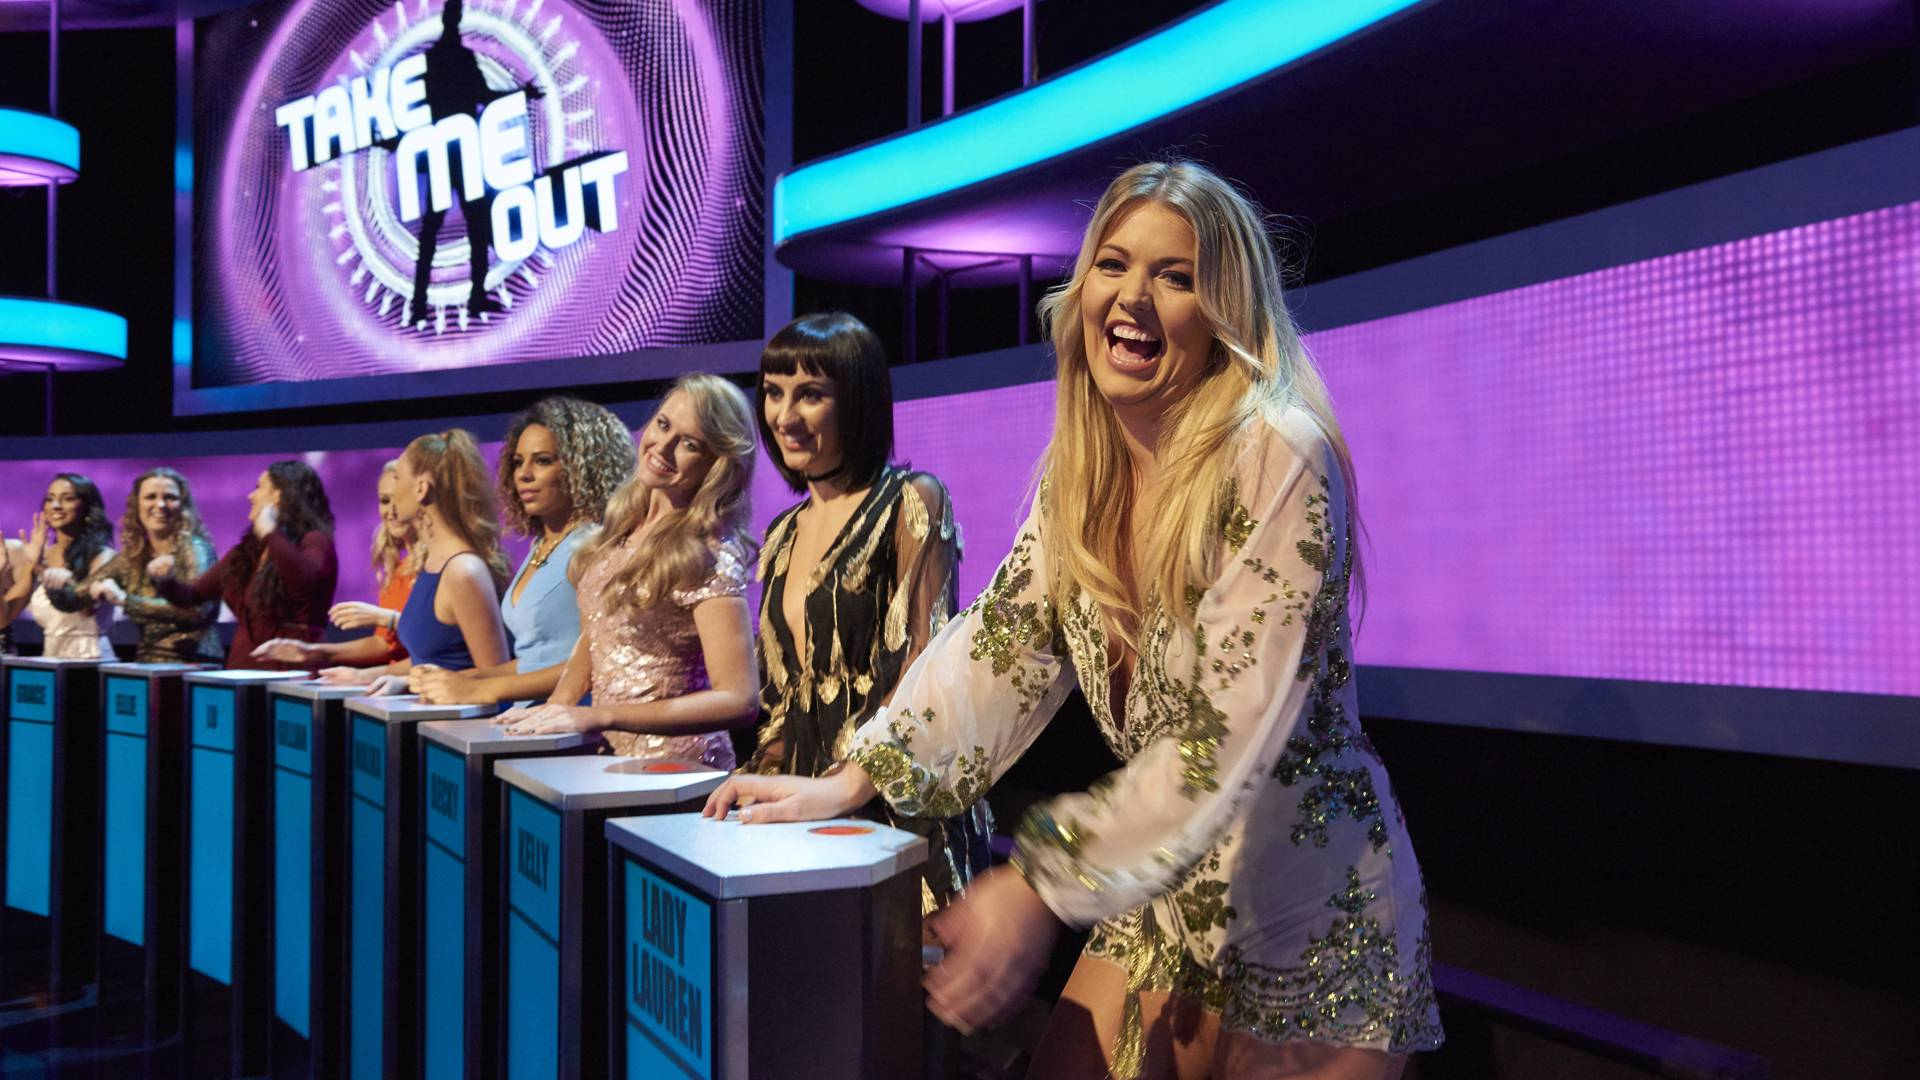 Dutch dating show take me out